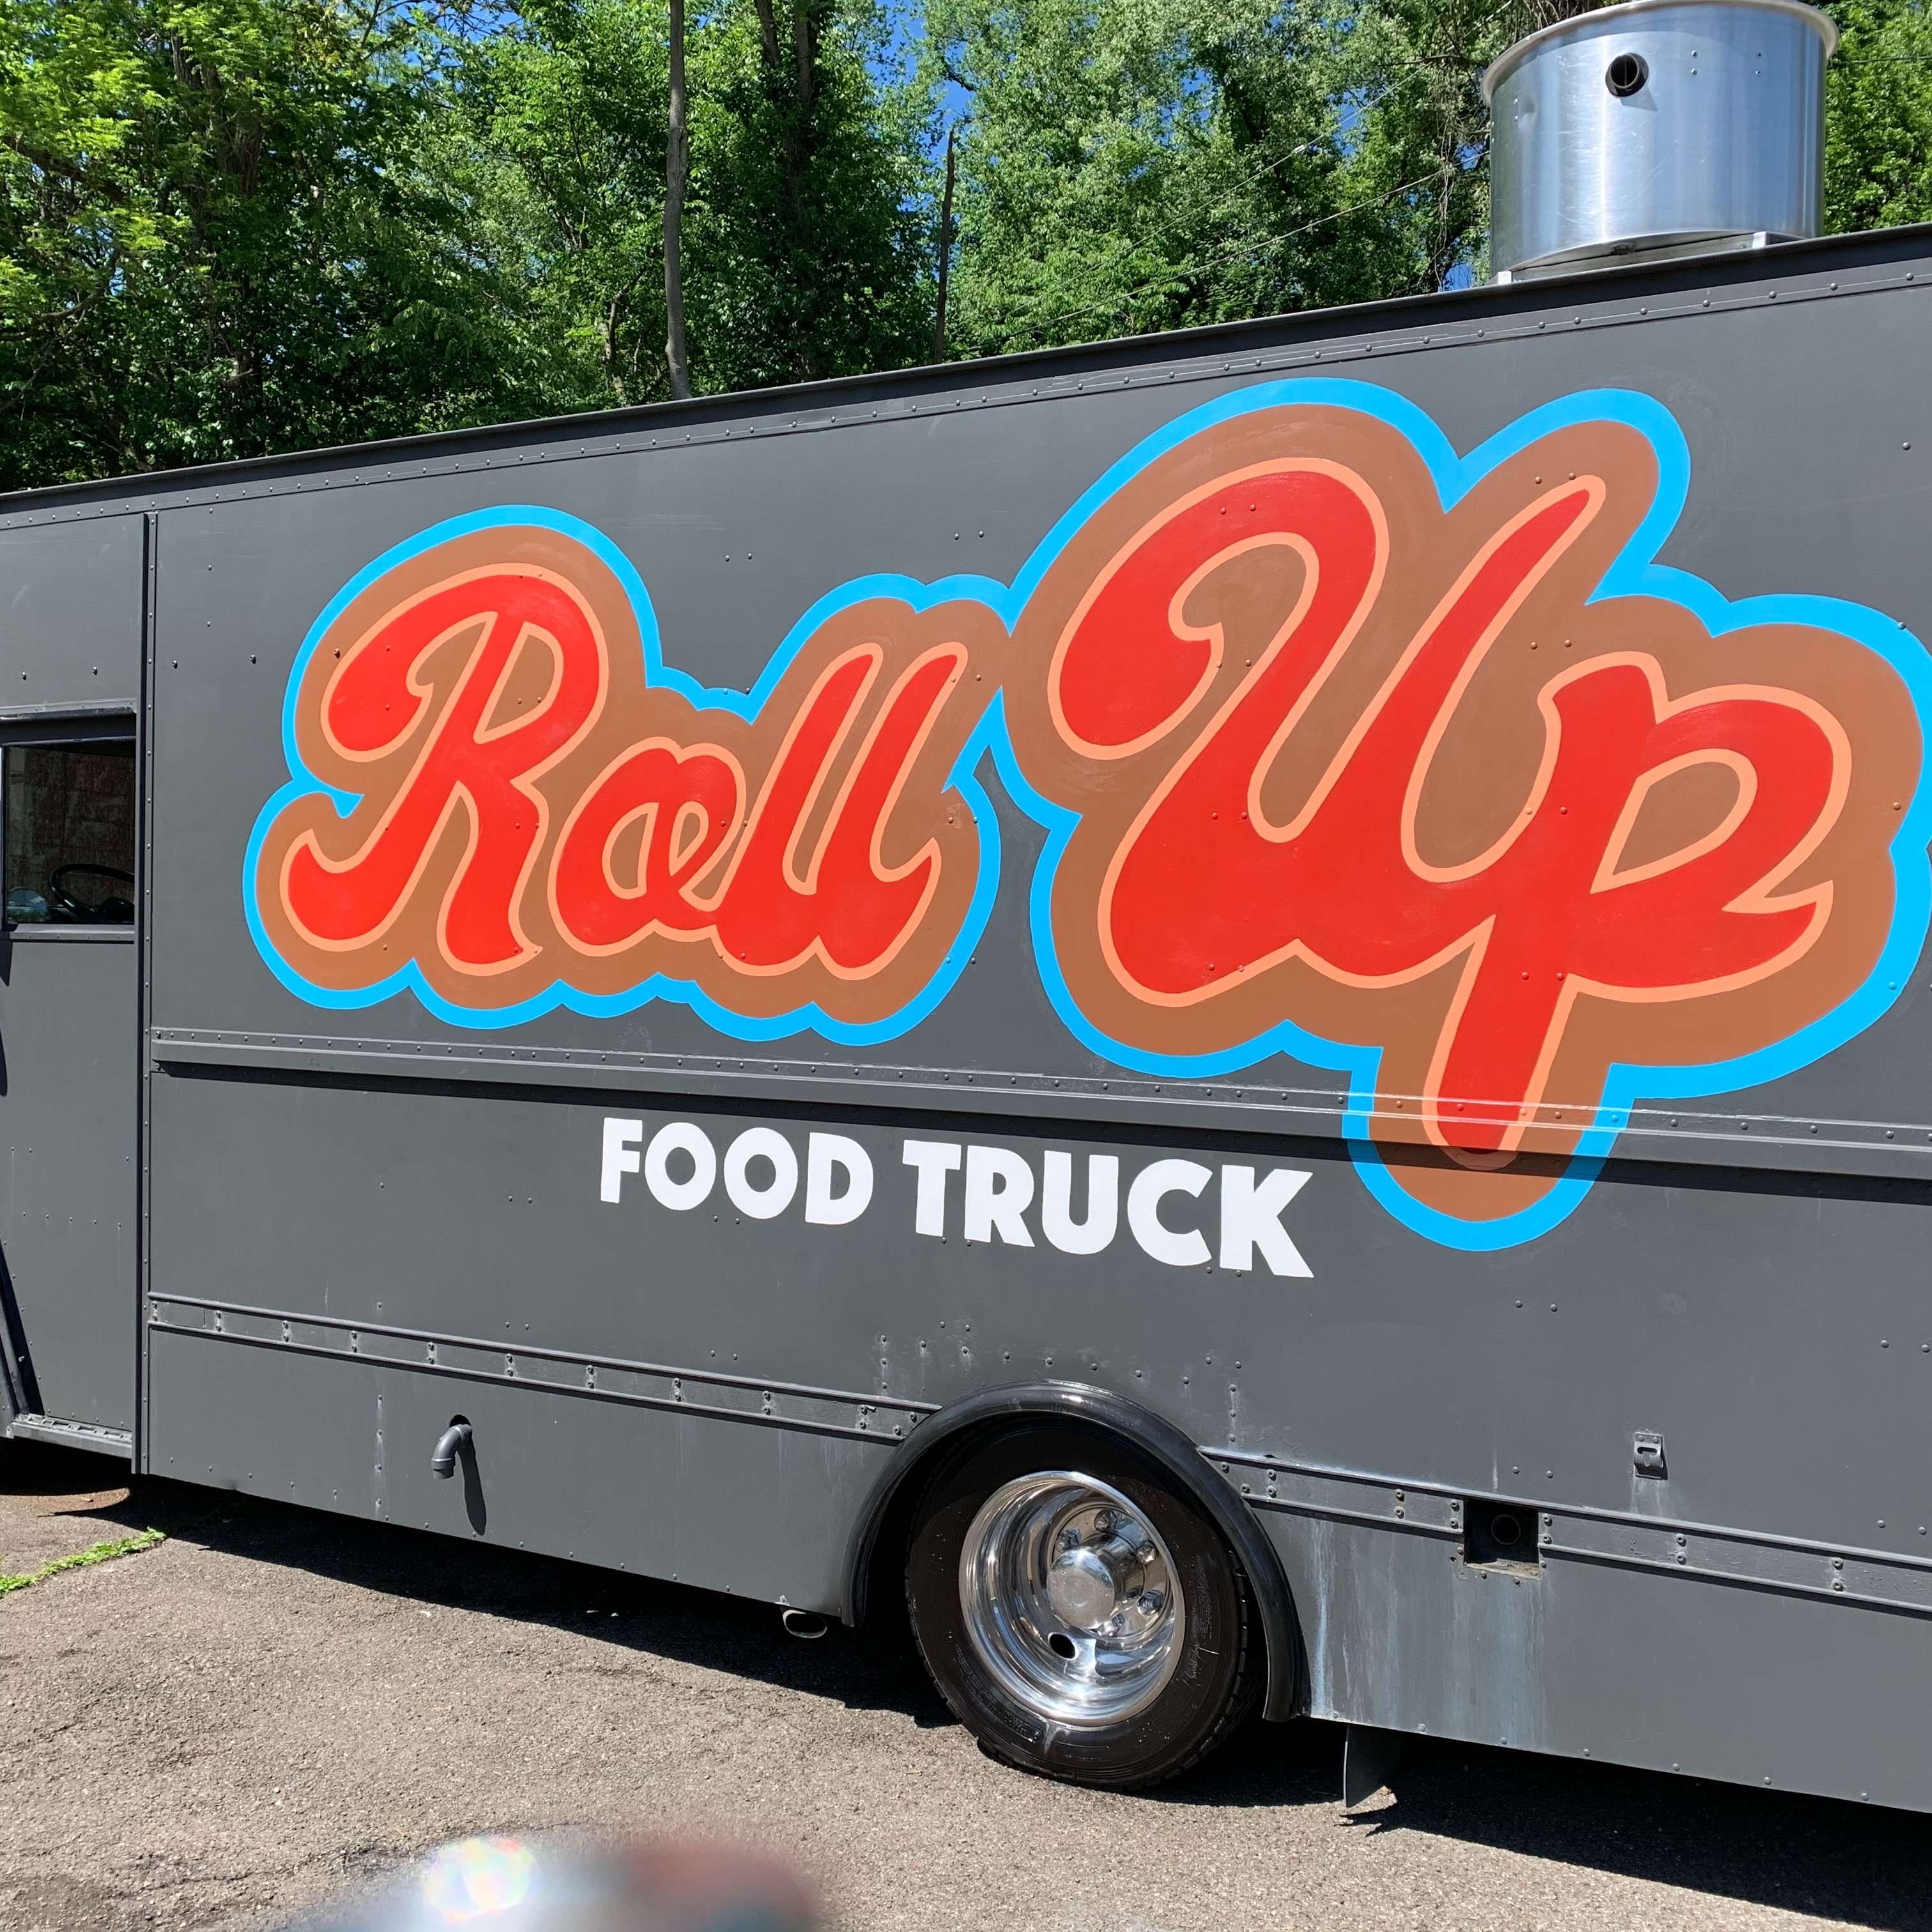 Roll Up food truck profile image